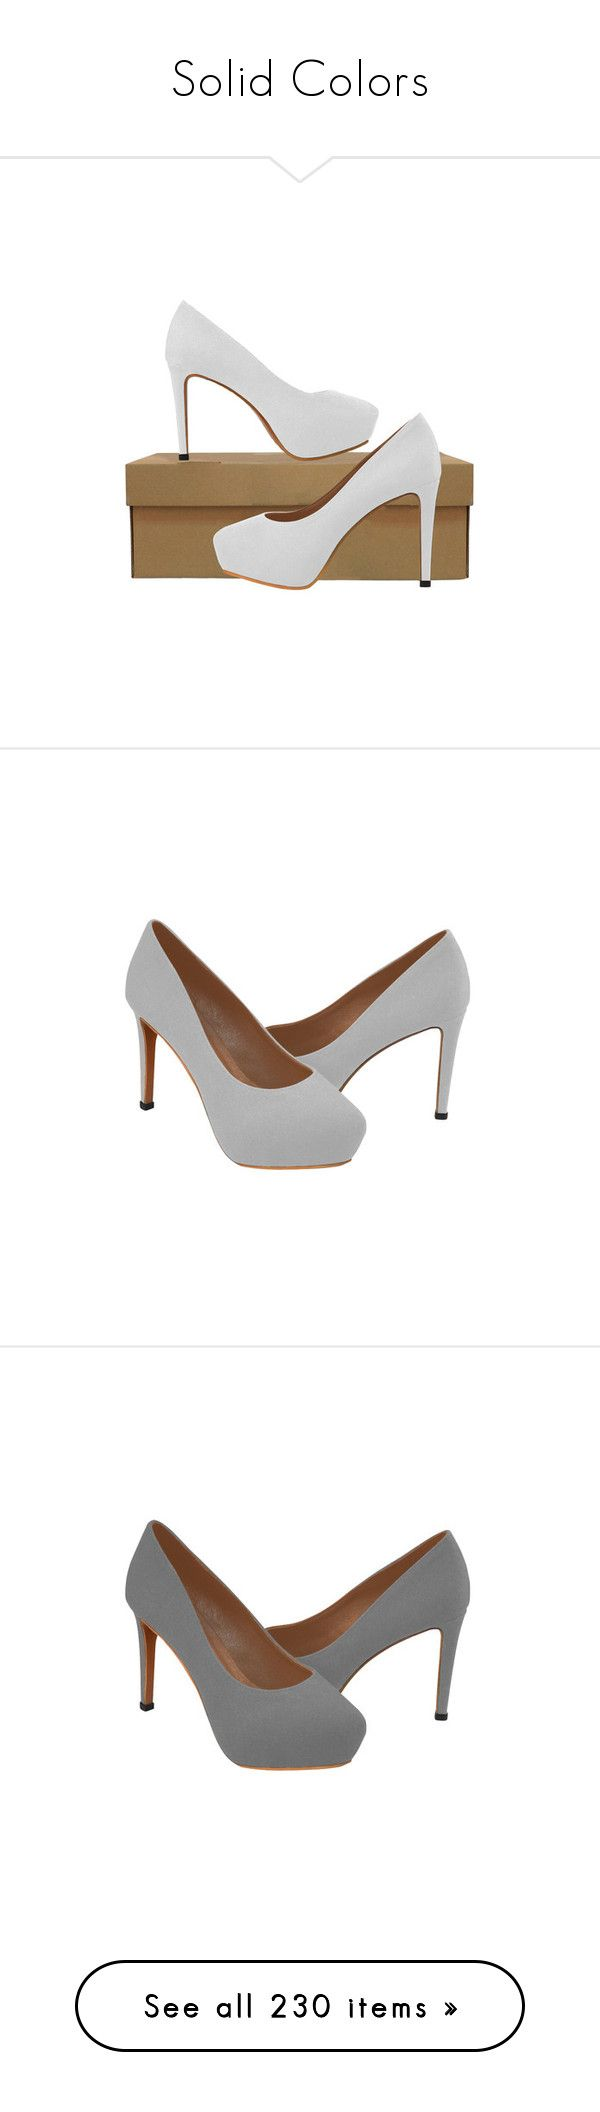 """""""Solid Colors"""" by wackyworkshop ❤ liked on Polyvore featuring shoes, pumps, high heel shoes, high heel court shoes, high heeled footwear, high heel pumps, gray pumps, gray high heel shoes, gray shoes and brown colour shoes"""